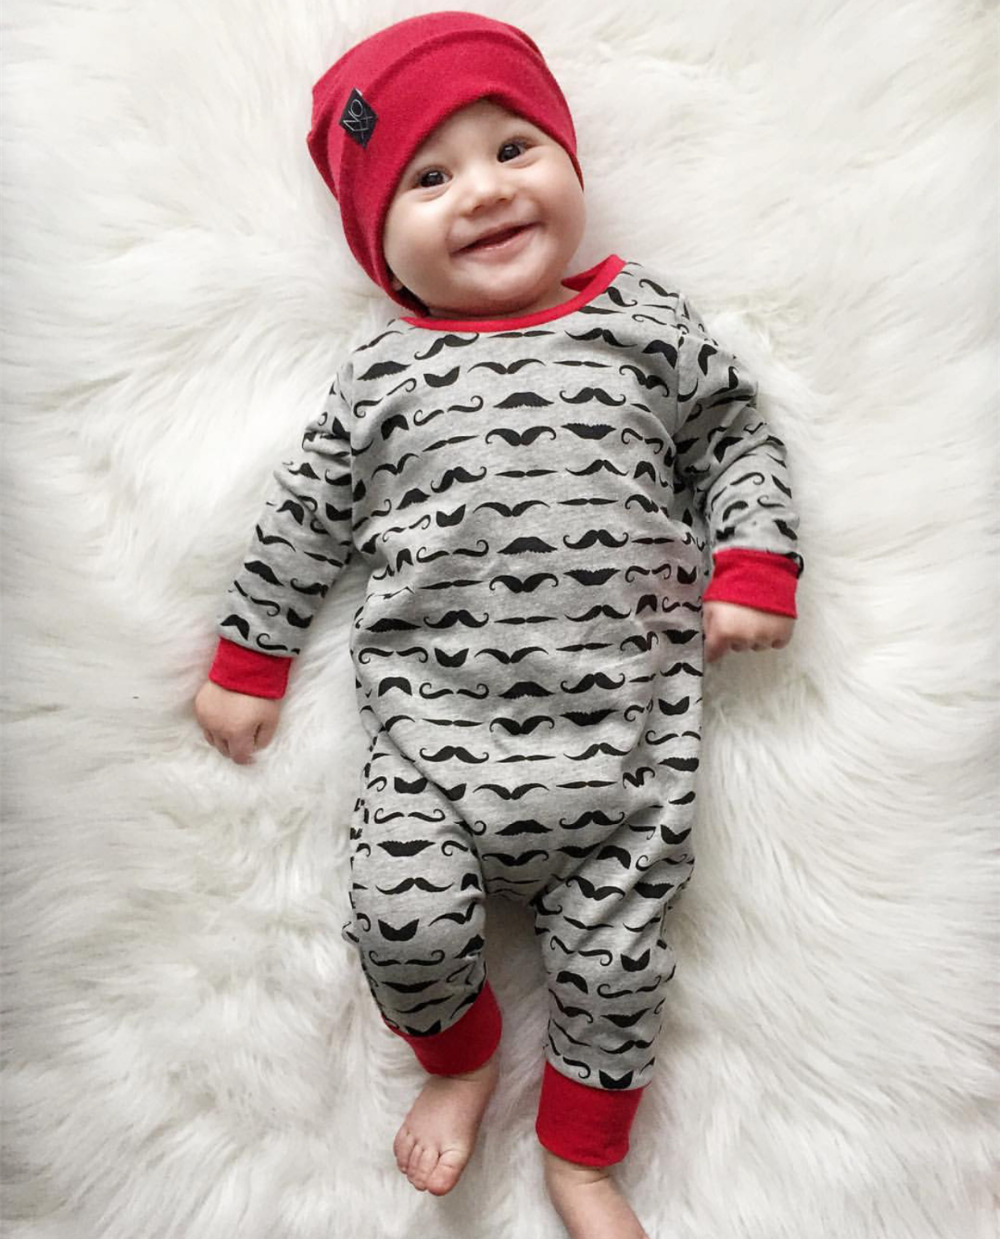 Baby-Rompers-Children-Autumn-Clothing-Newborn-Baby-Clothes-Cotton-Long-Sleeve-Mustache-Printed-Baby-Boy-Jumpsuit-1